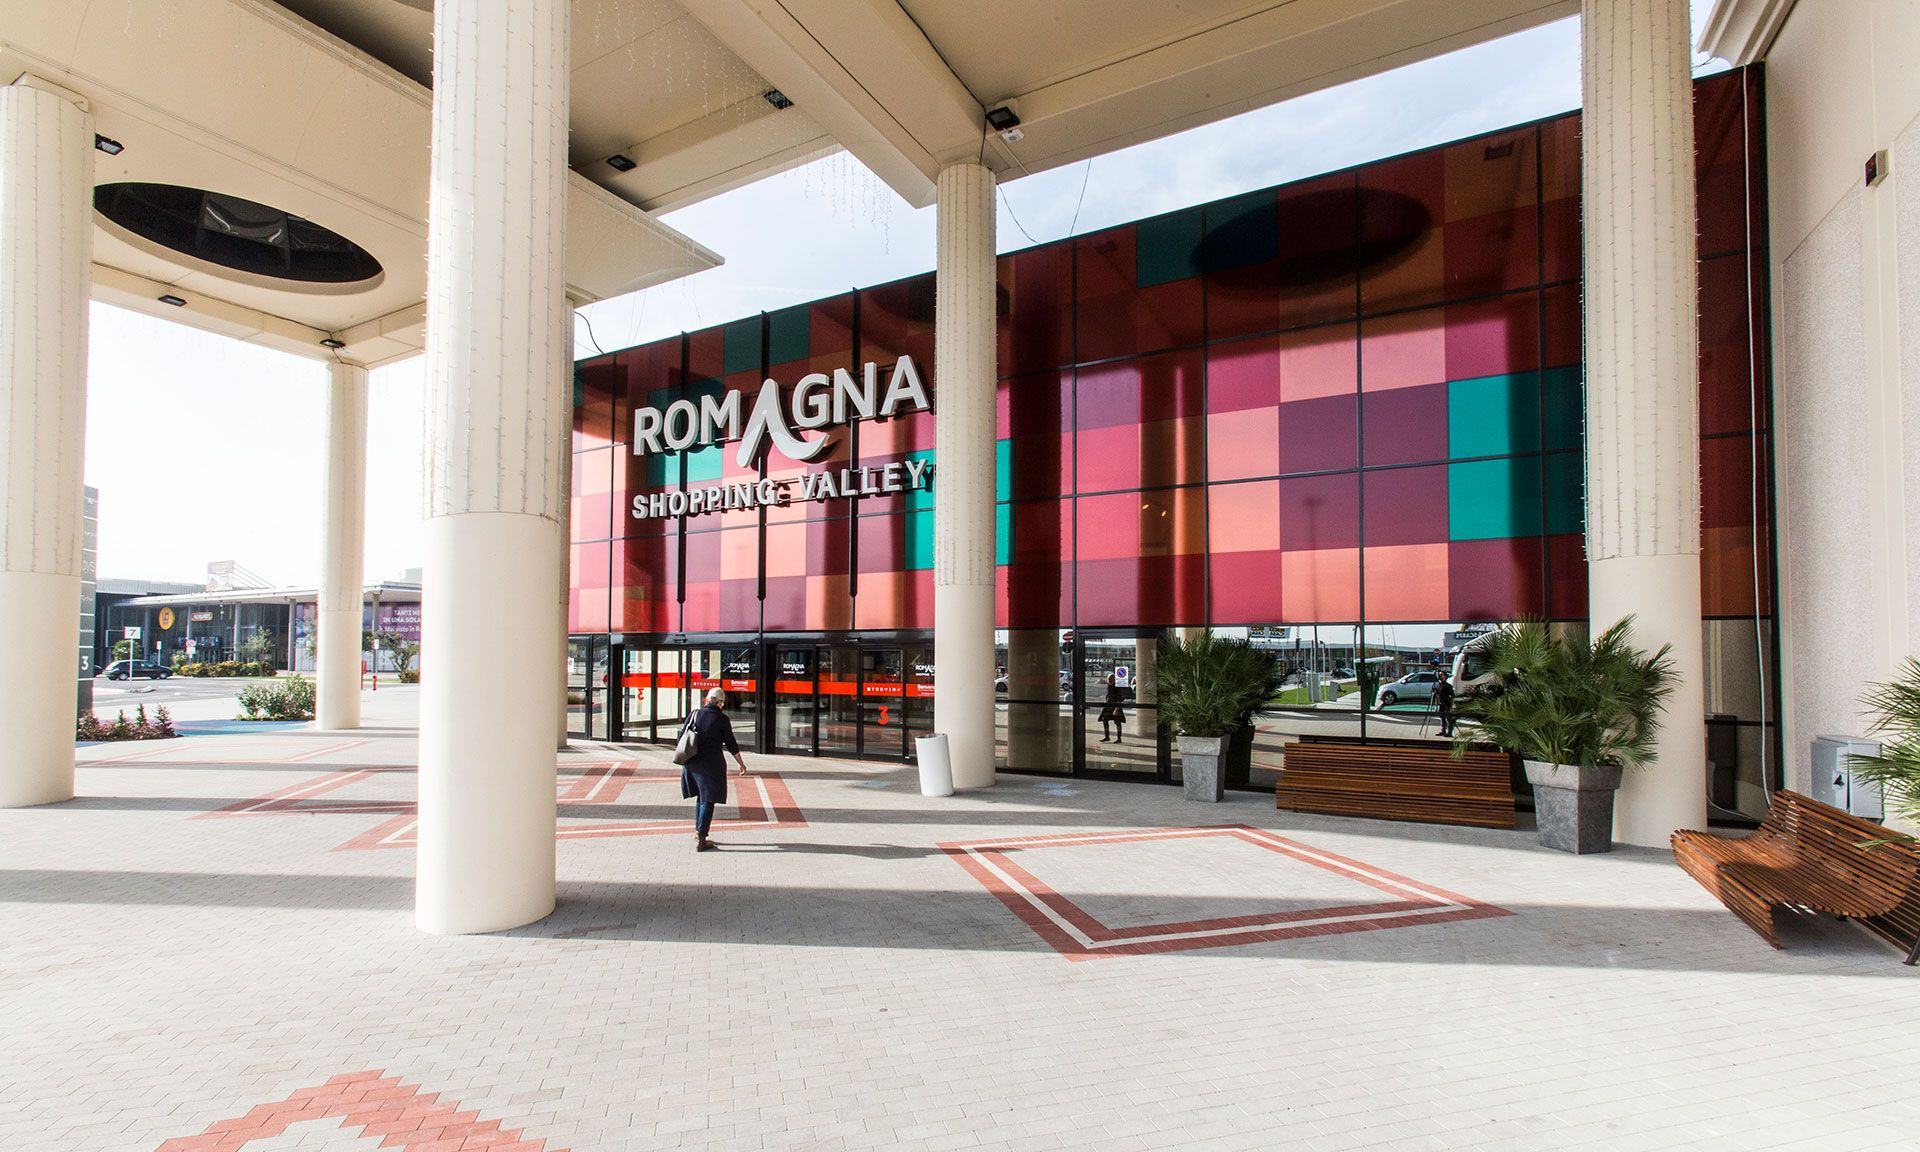 Romagna Shopping Valley - 1